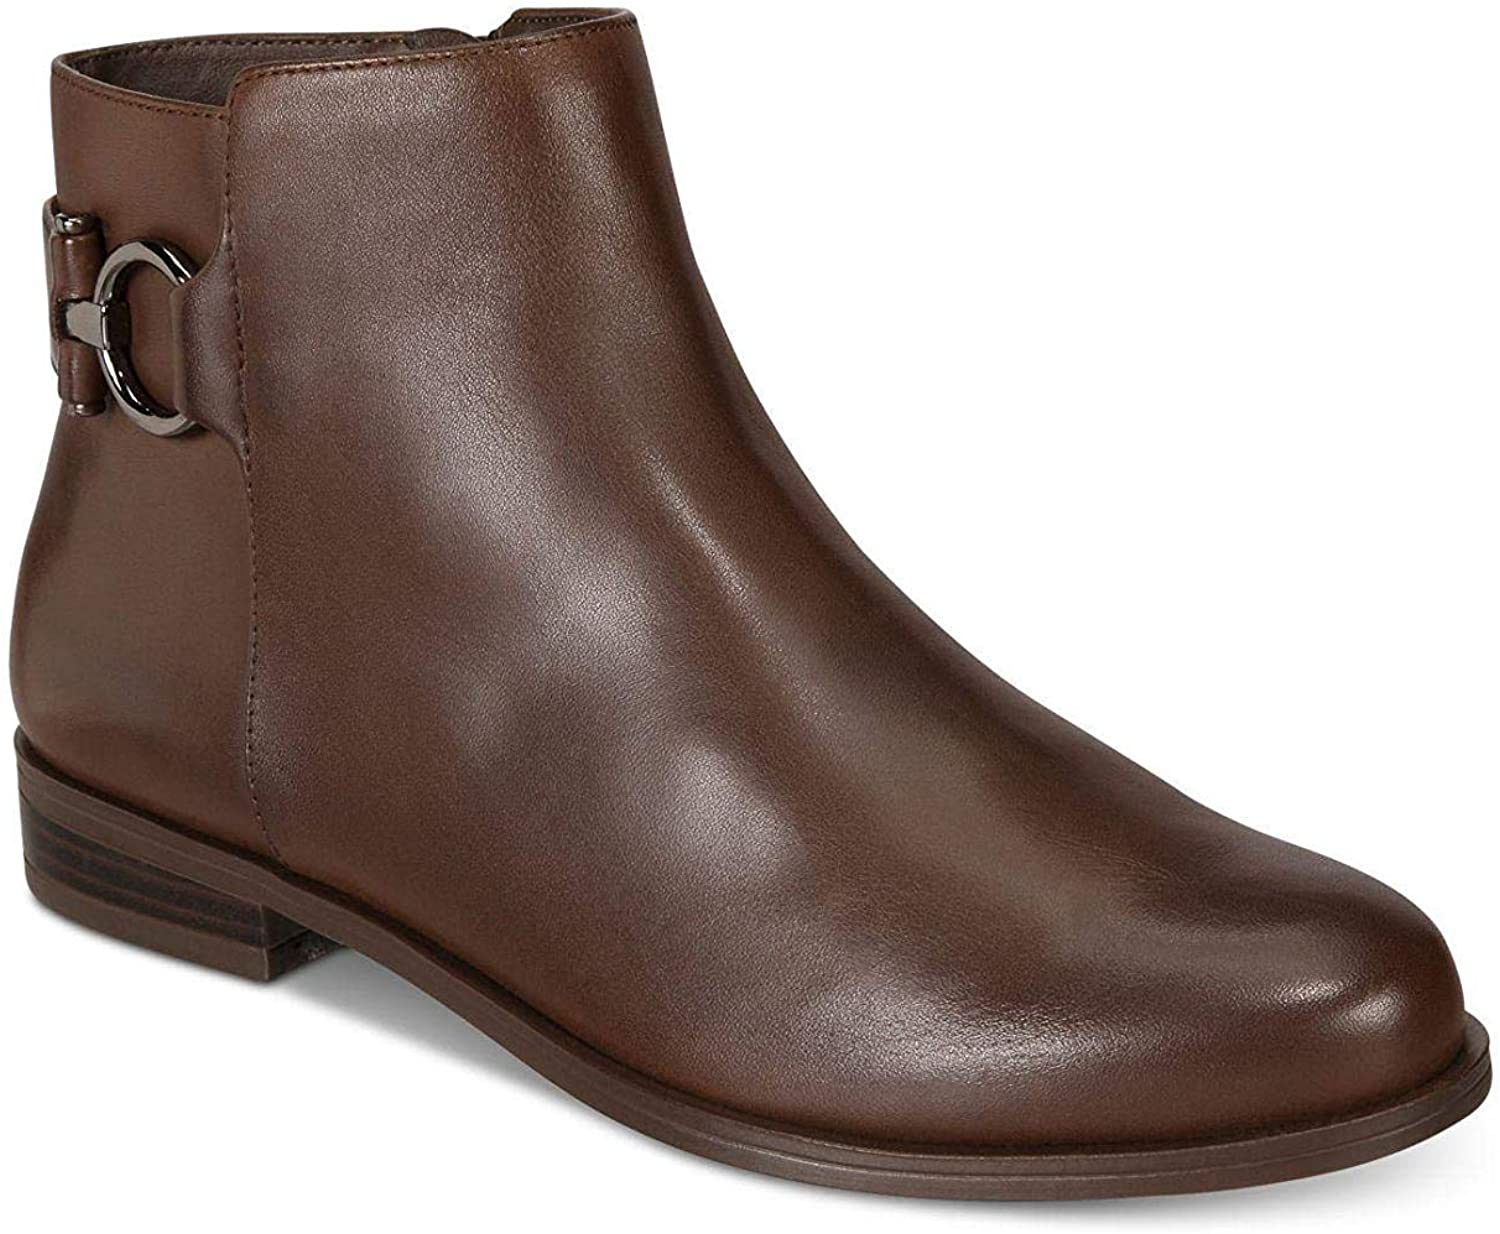 Alfani Womens Ayaa Leather Closed Toe Ankle Fashion Boots, Cold Brew, Size 8.0